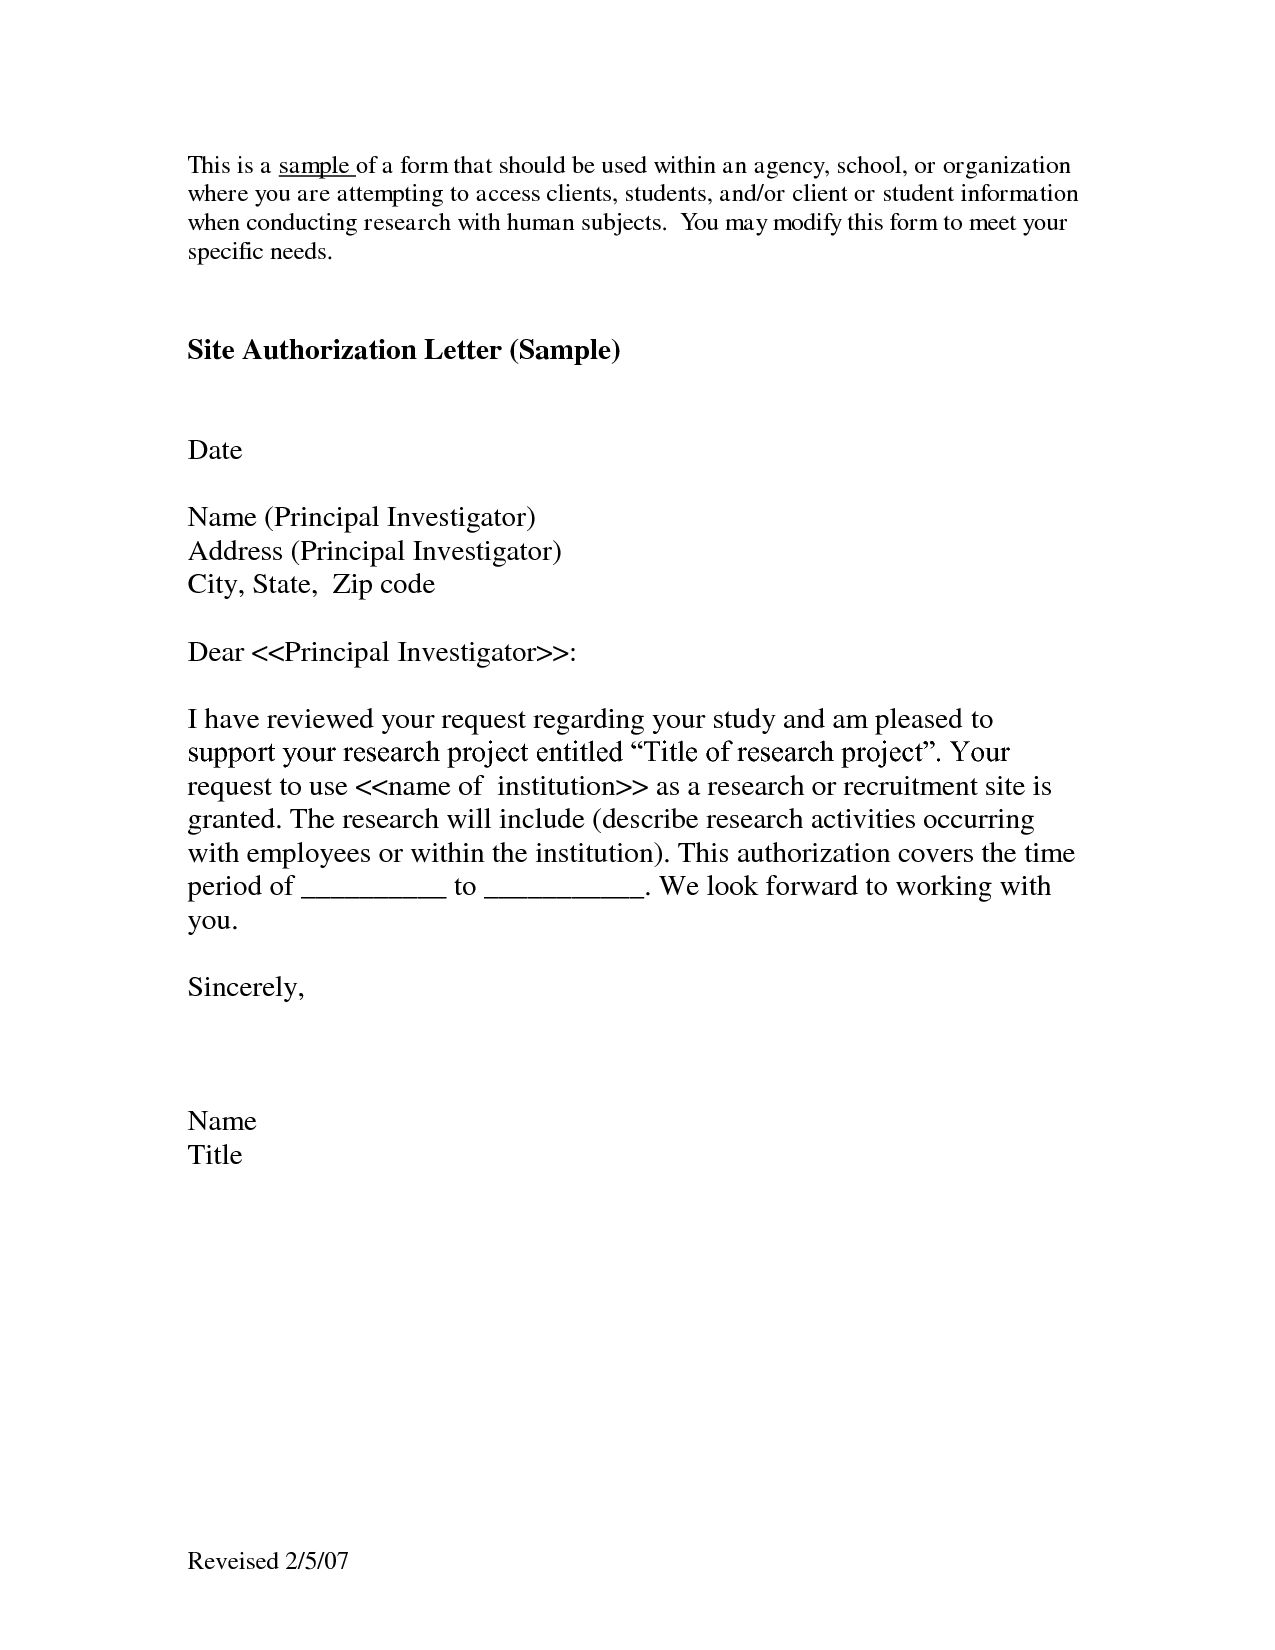 Tender Authorization Letter Authorization Letter to Purchase – Authorization Letter Sample